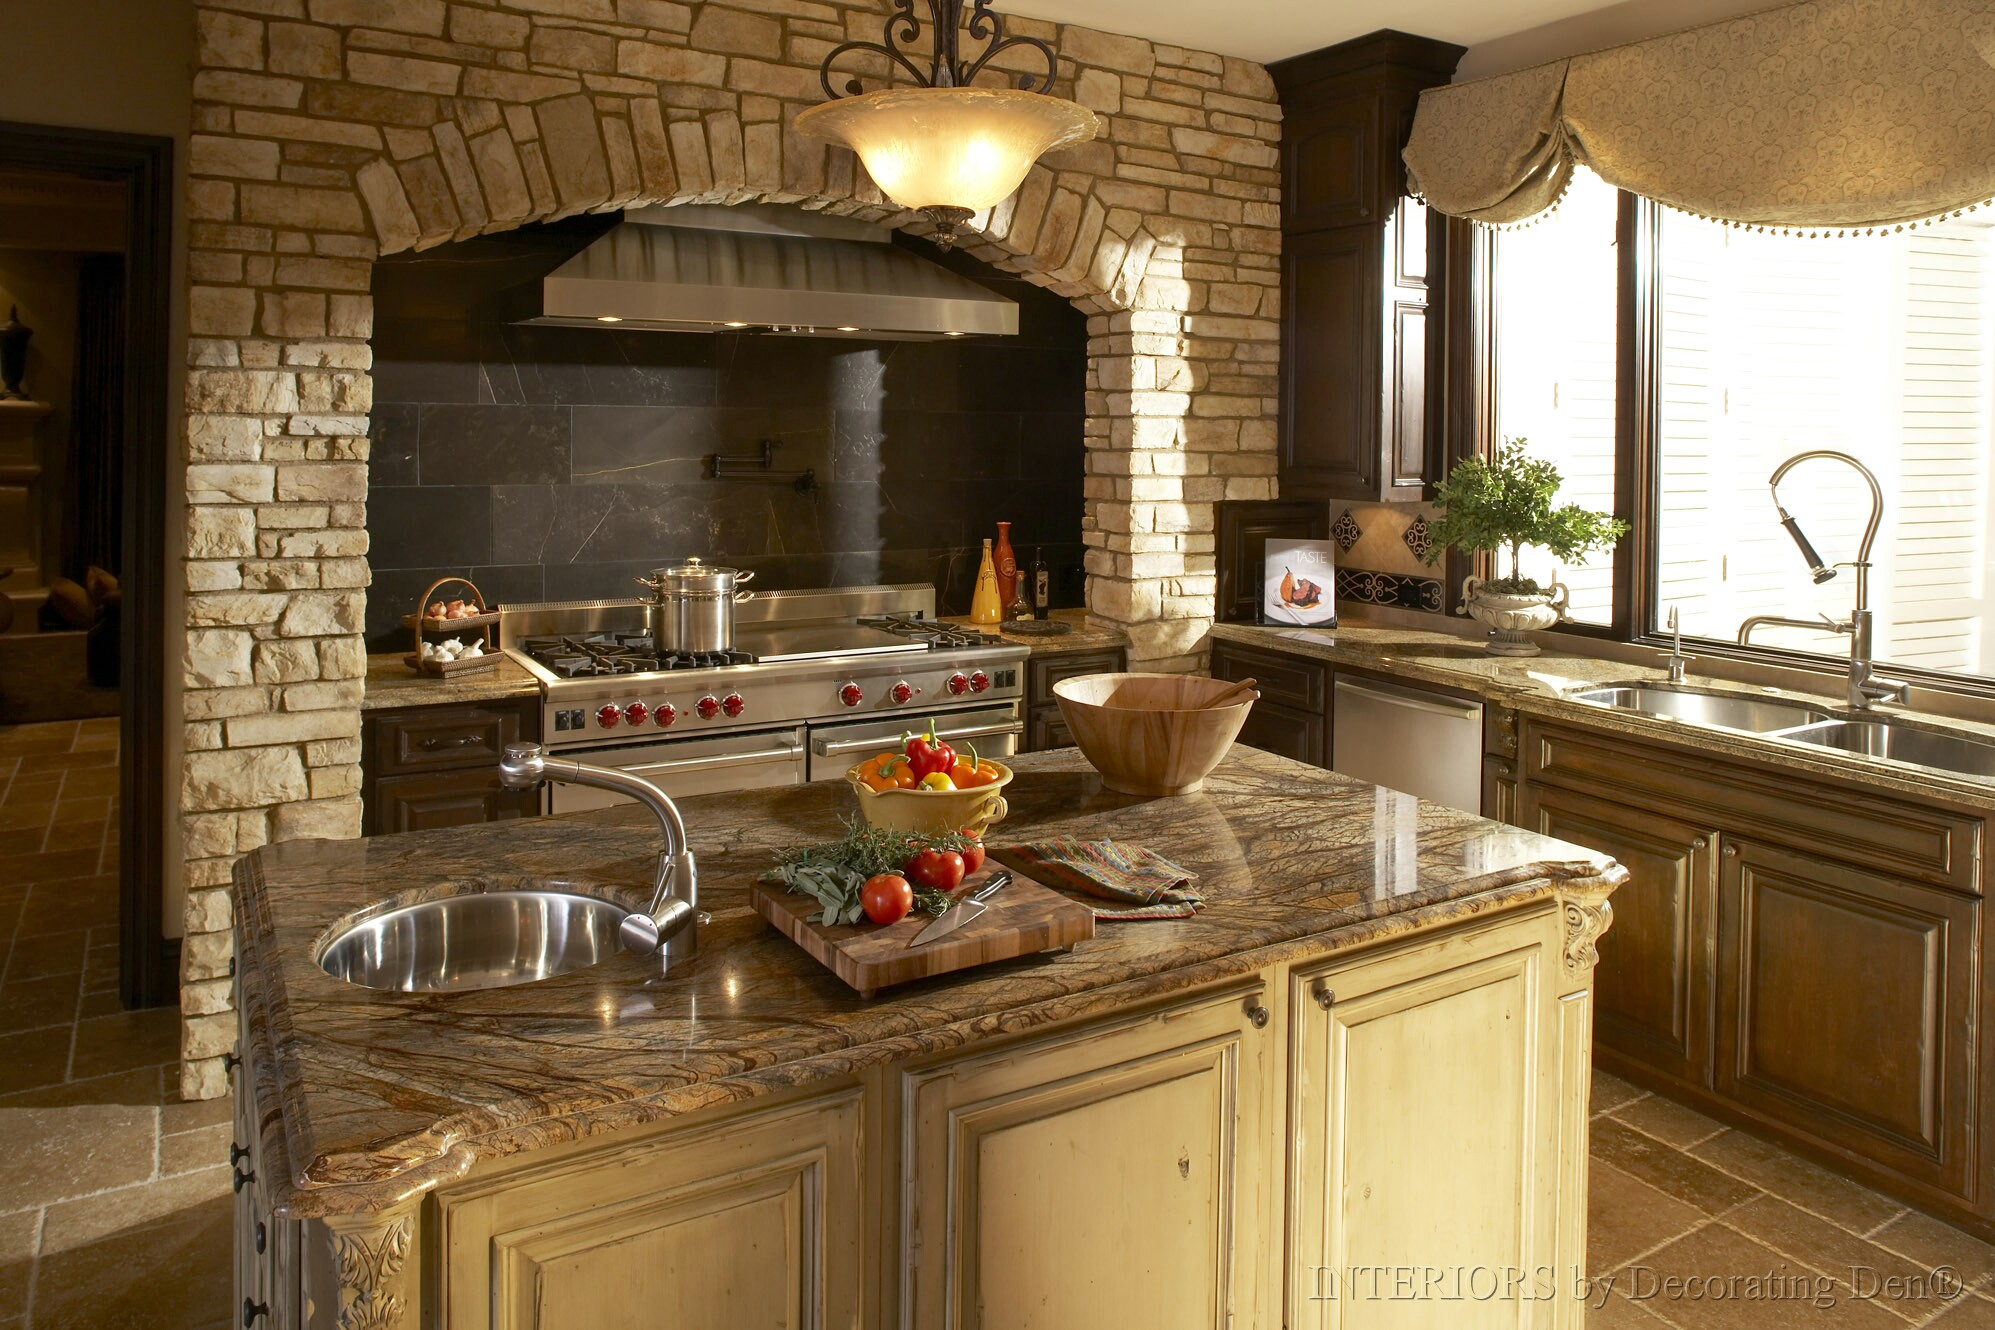 Type Window Tuscan Stylish Kitchen (Image 8 of 8)